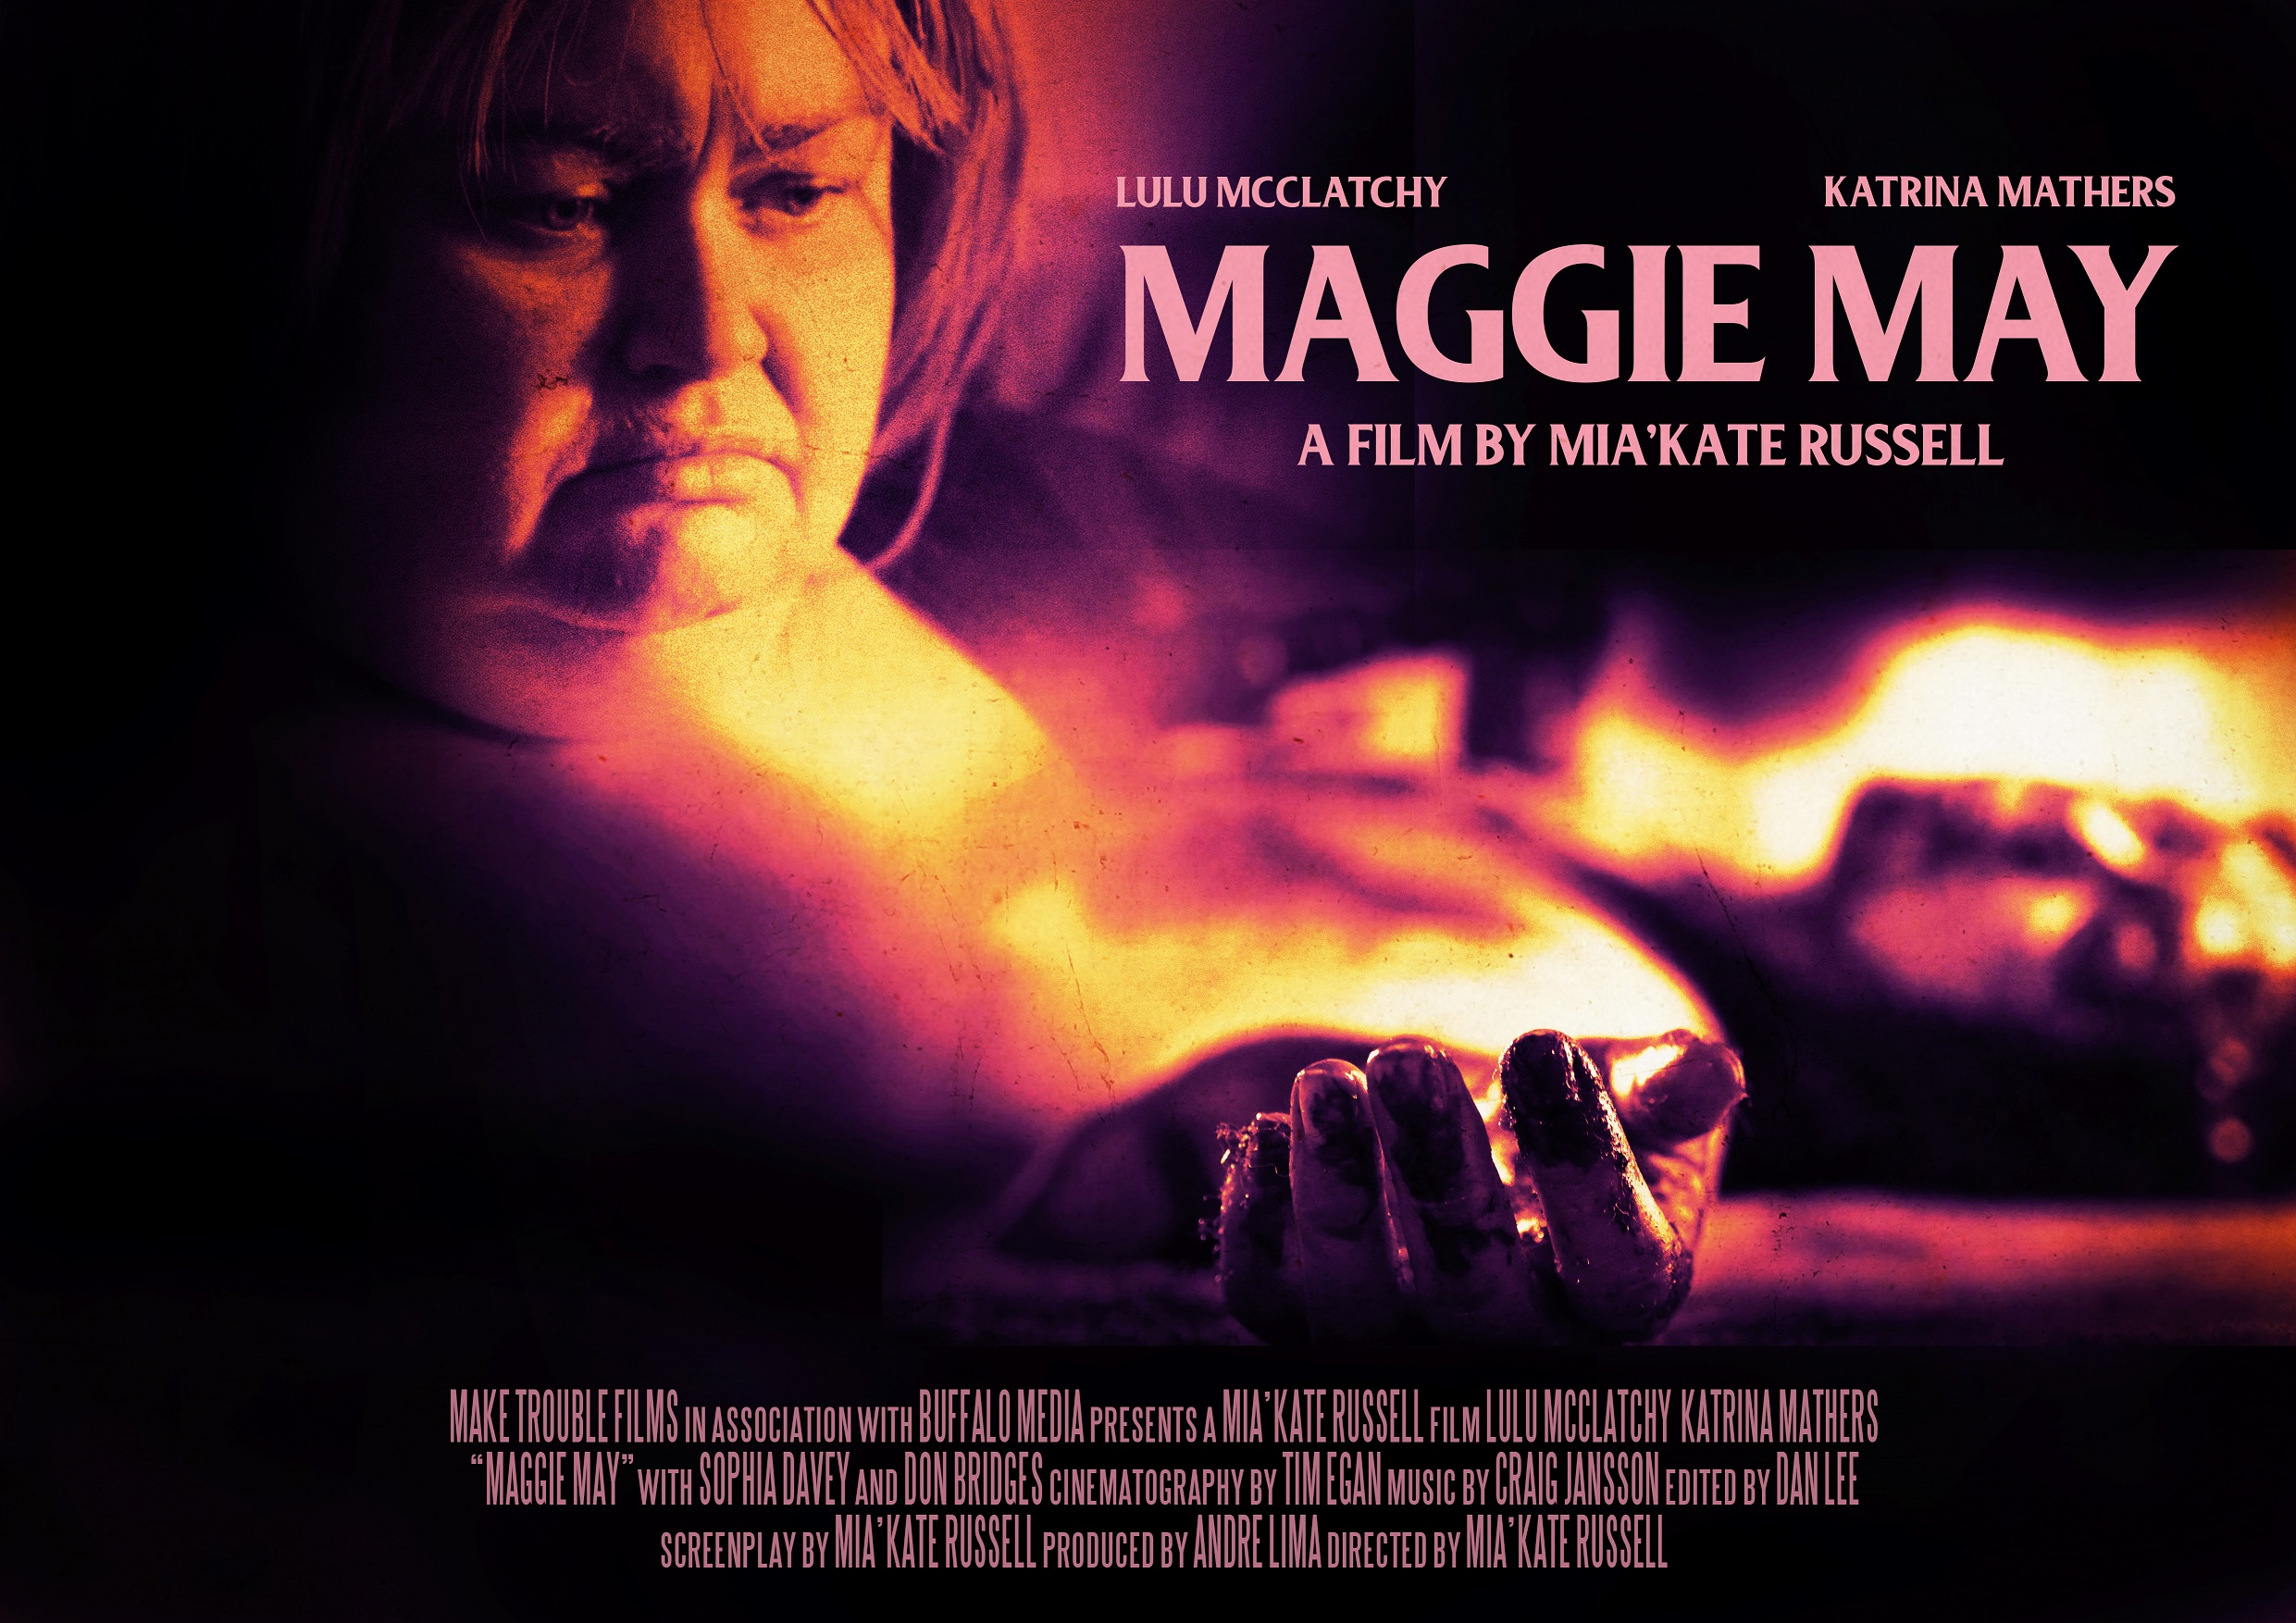 Maggie May poster